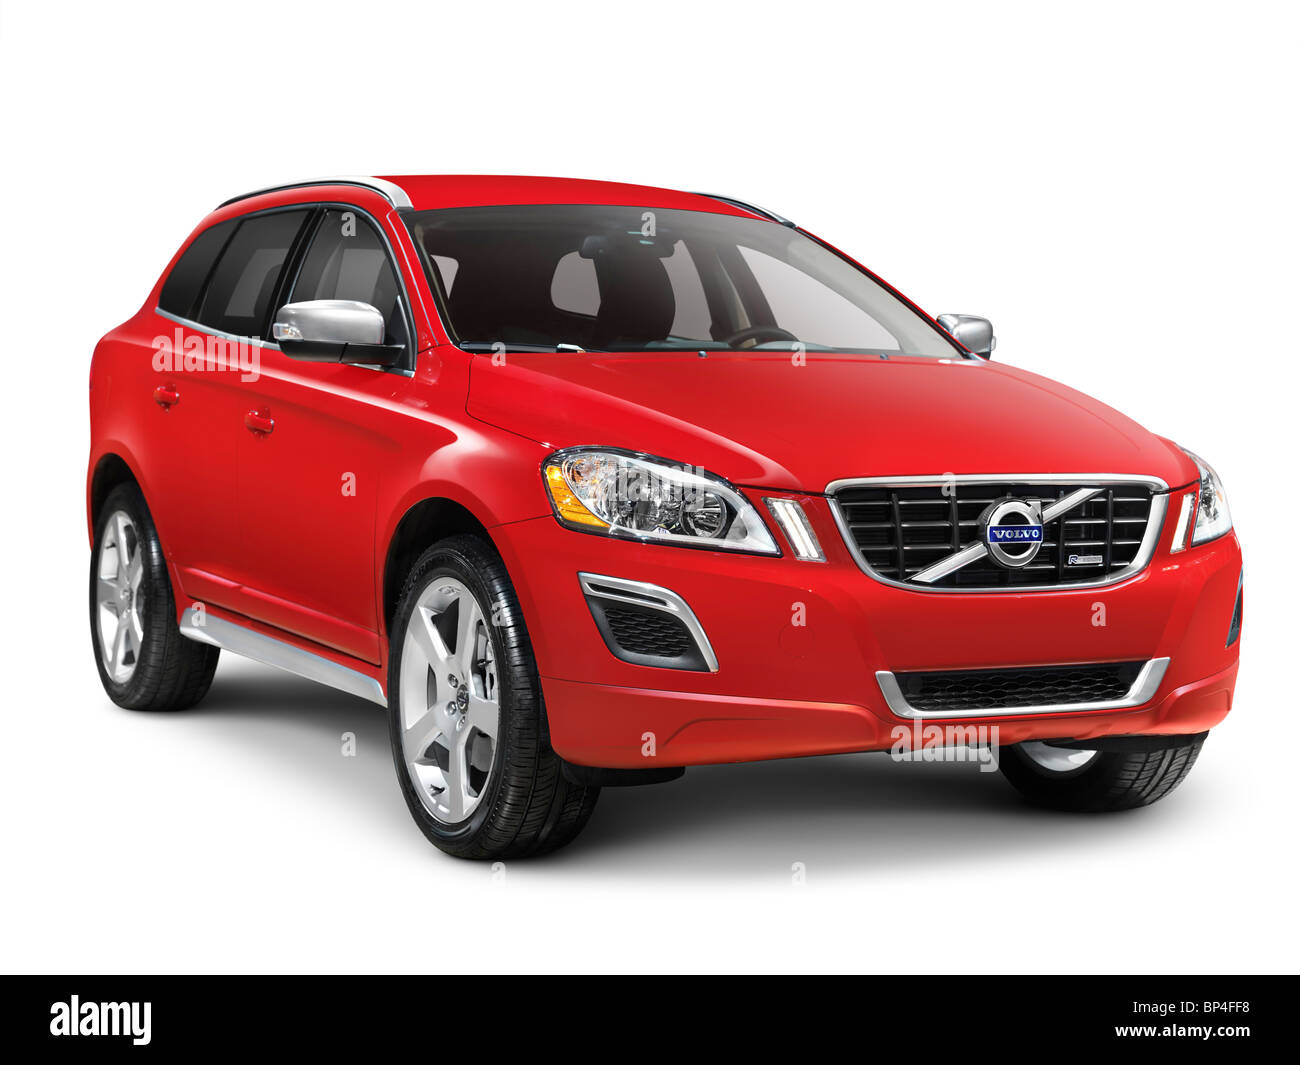 red 2010 volvo xc60 t6 awd r design midsize suv the safest car to stock photo royalty free. Black Bedroom Furniture Sets. Home Design Ideas